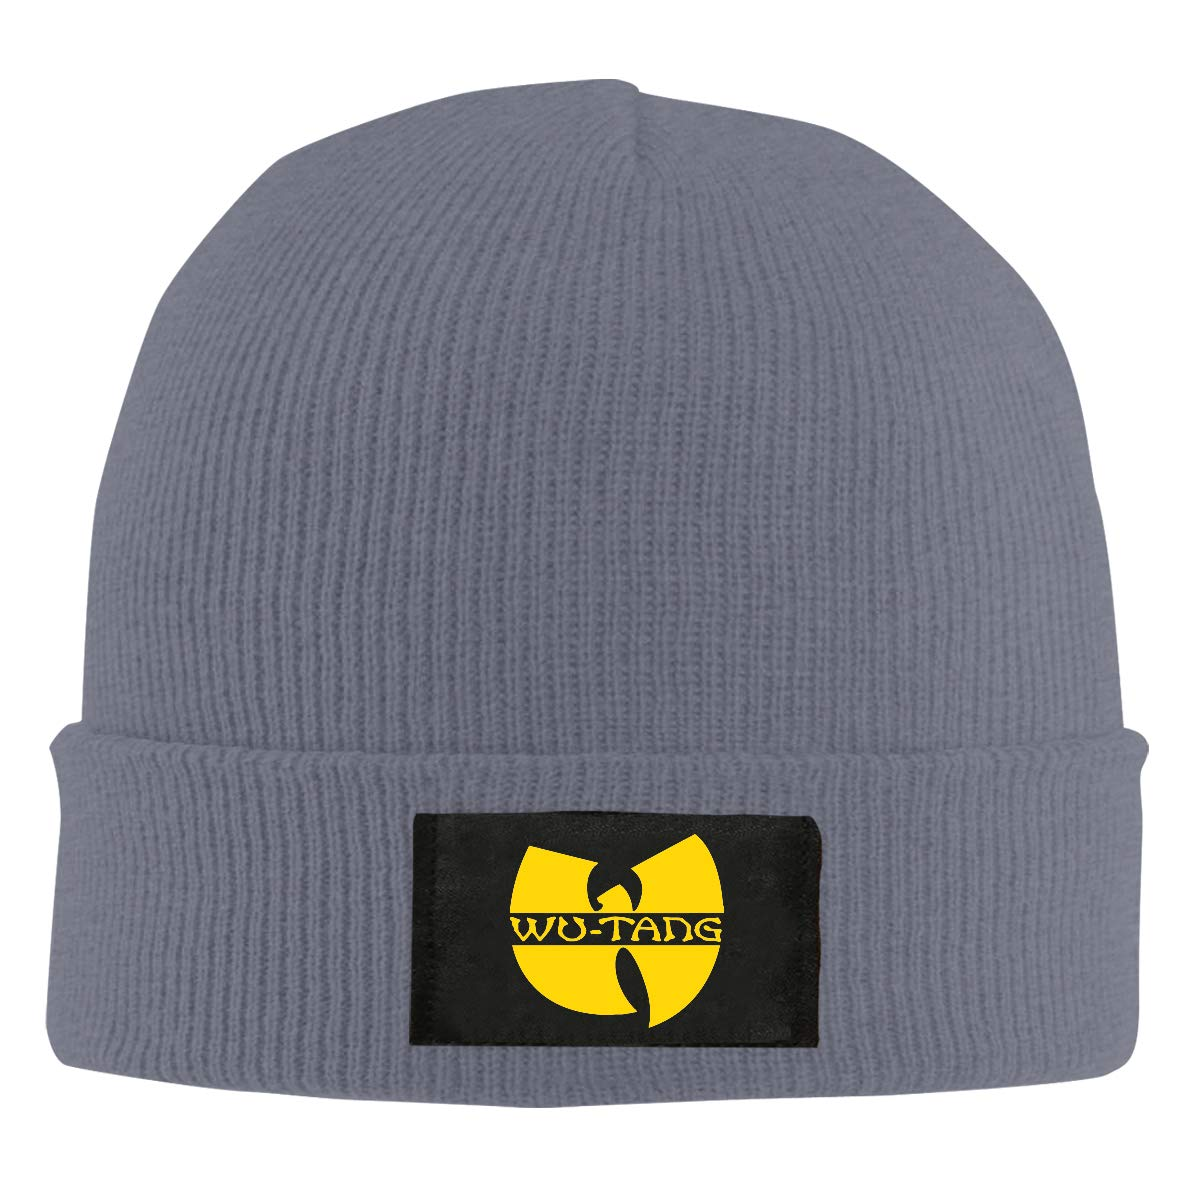 66d2cac8a Unisex Skull Cap Beanie Cap - Wu Tang Clan Poker at Amazon Men's ...